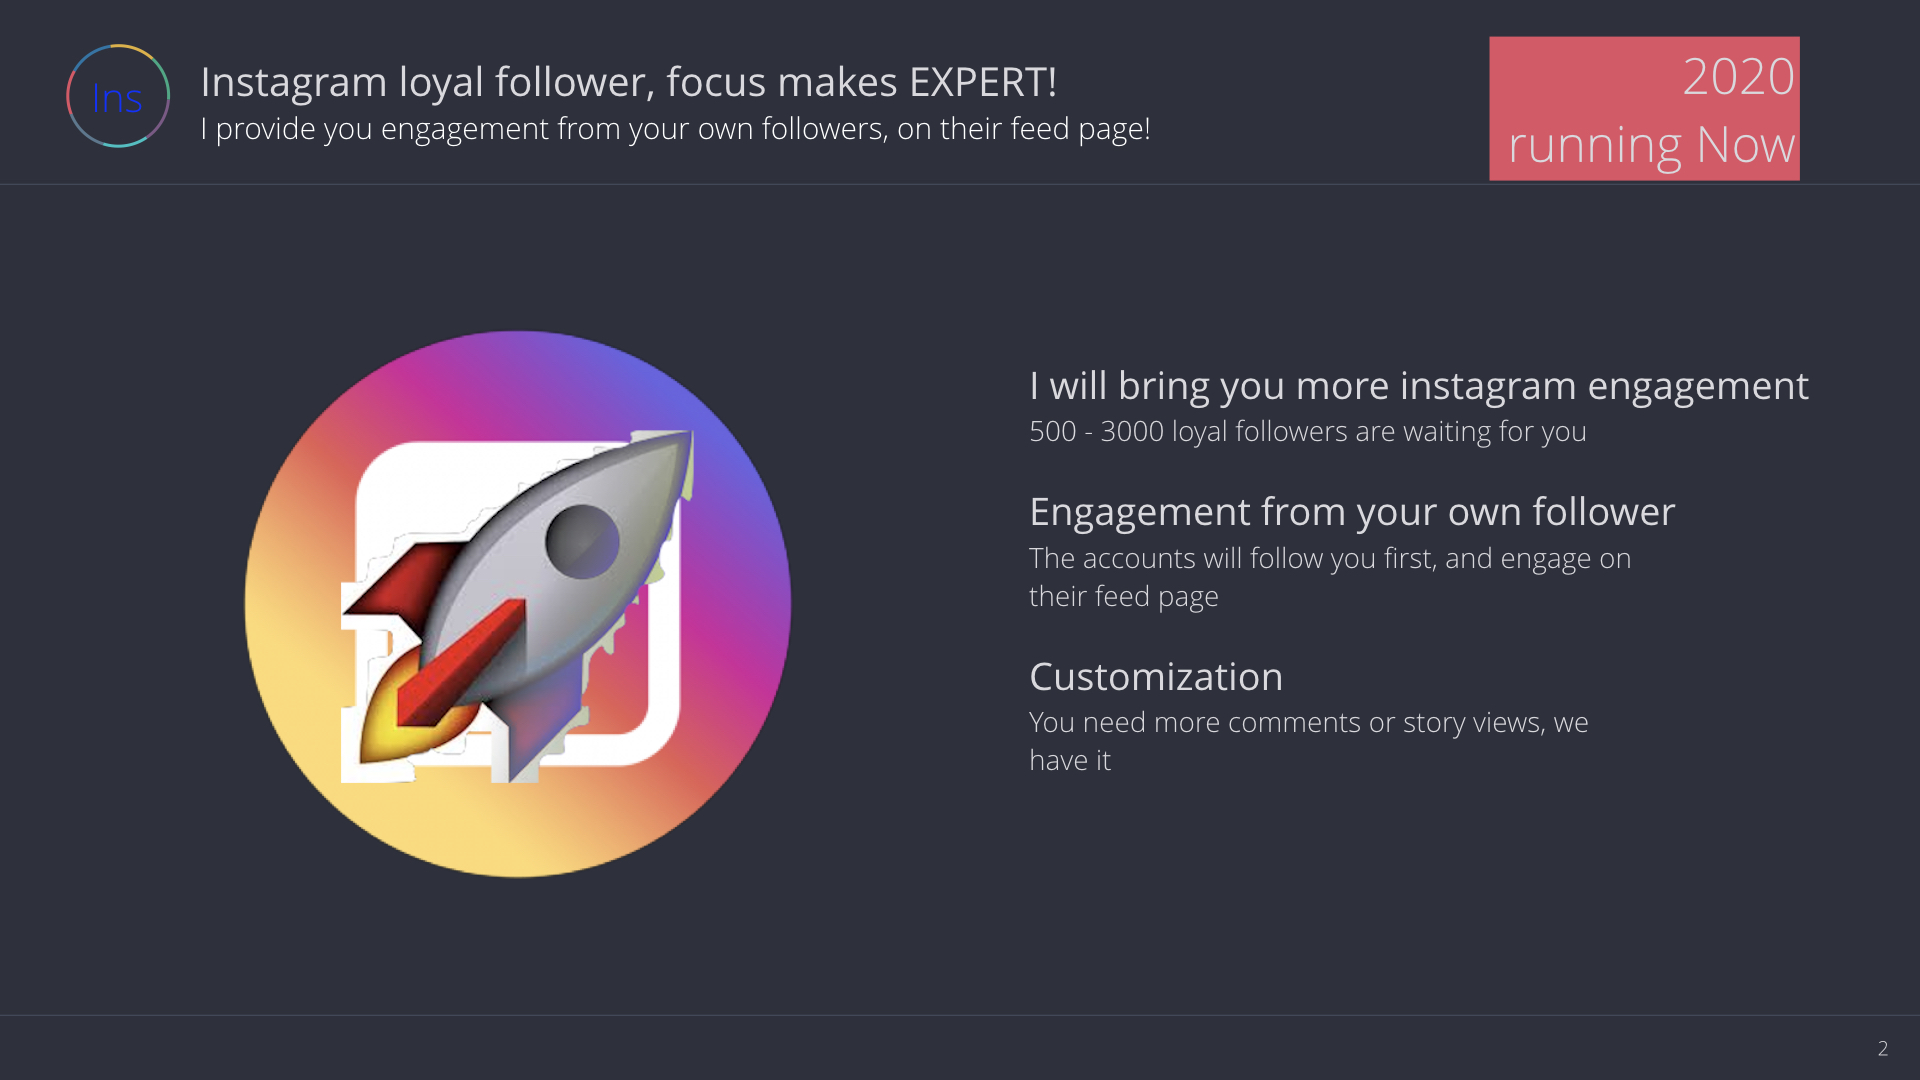 guarantee you more engagement on your ins from your own follower!